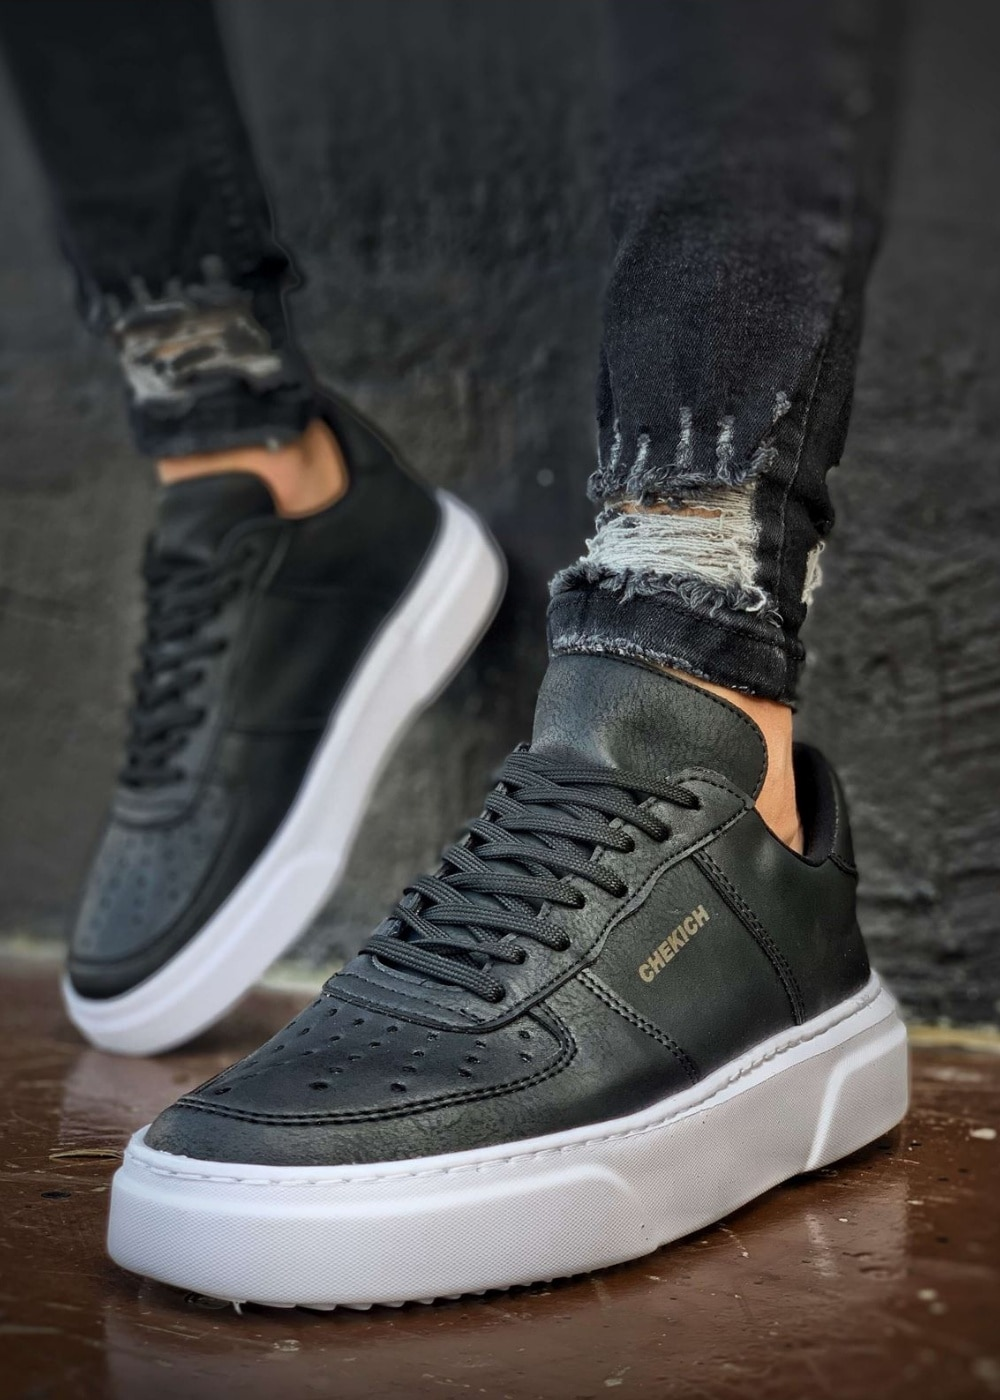 Chekich Thick Bottom Men Shoes Man Sneakers Lightweight Casual Stylish 2020 Trend Autumn Spring S